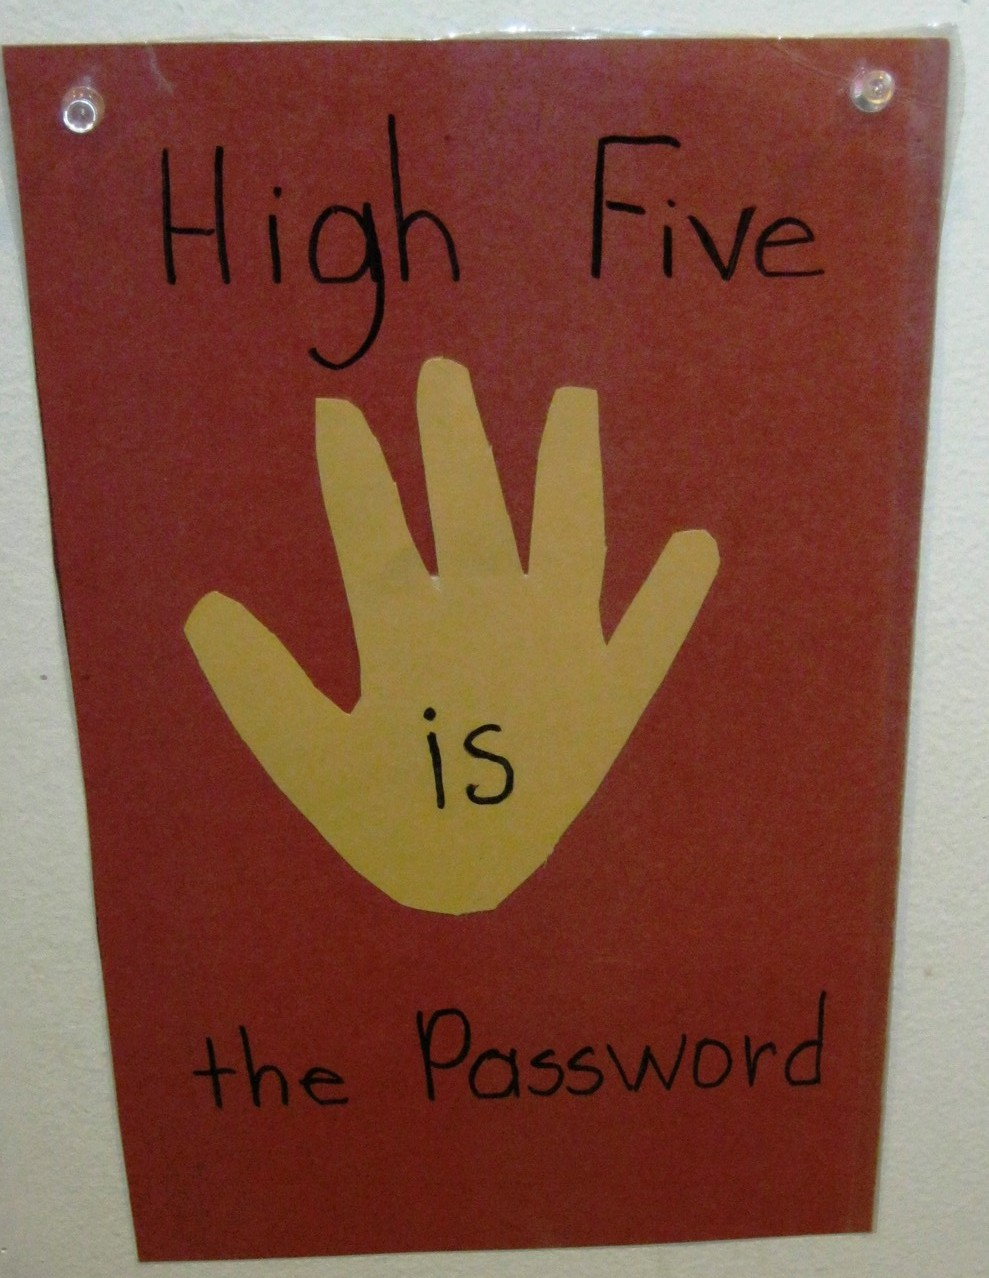 We become familiar with sight words with a high five as we pass by.